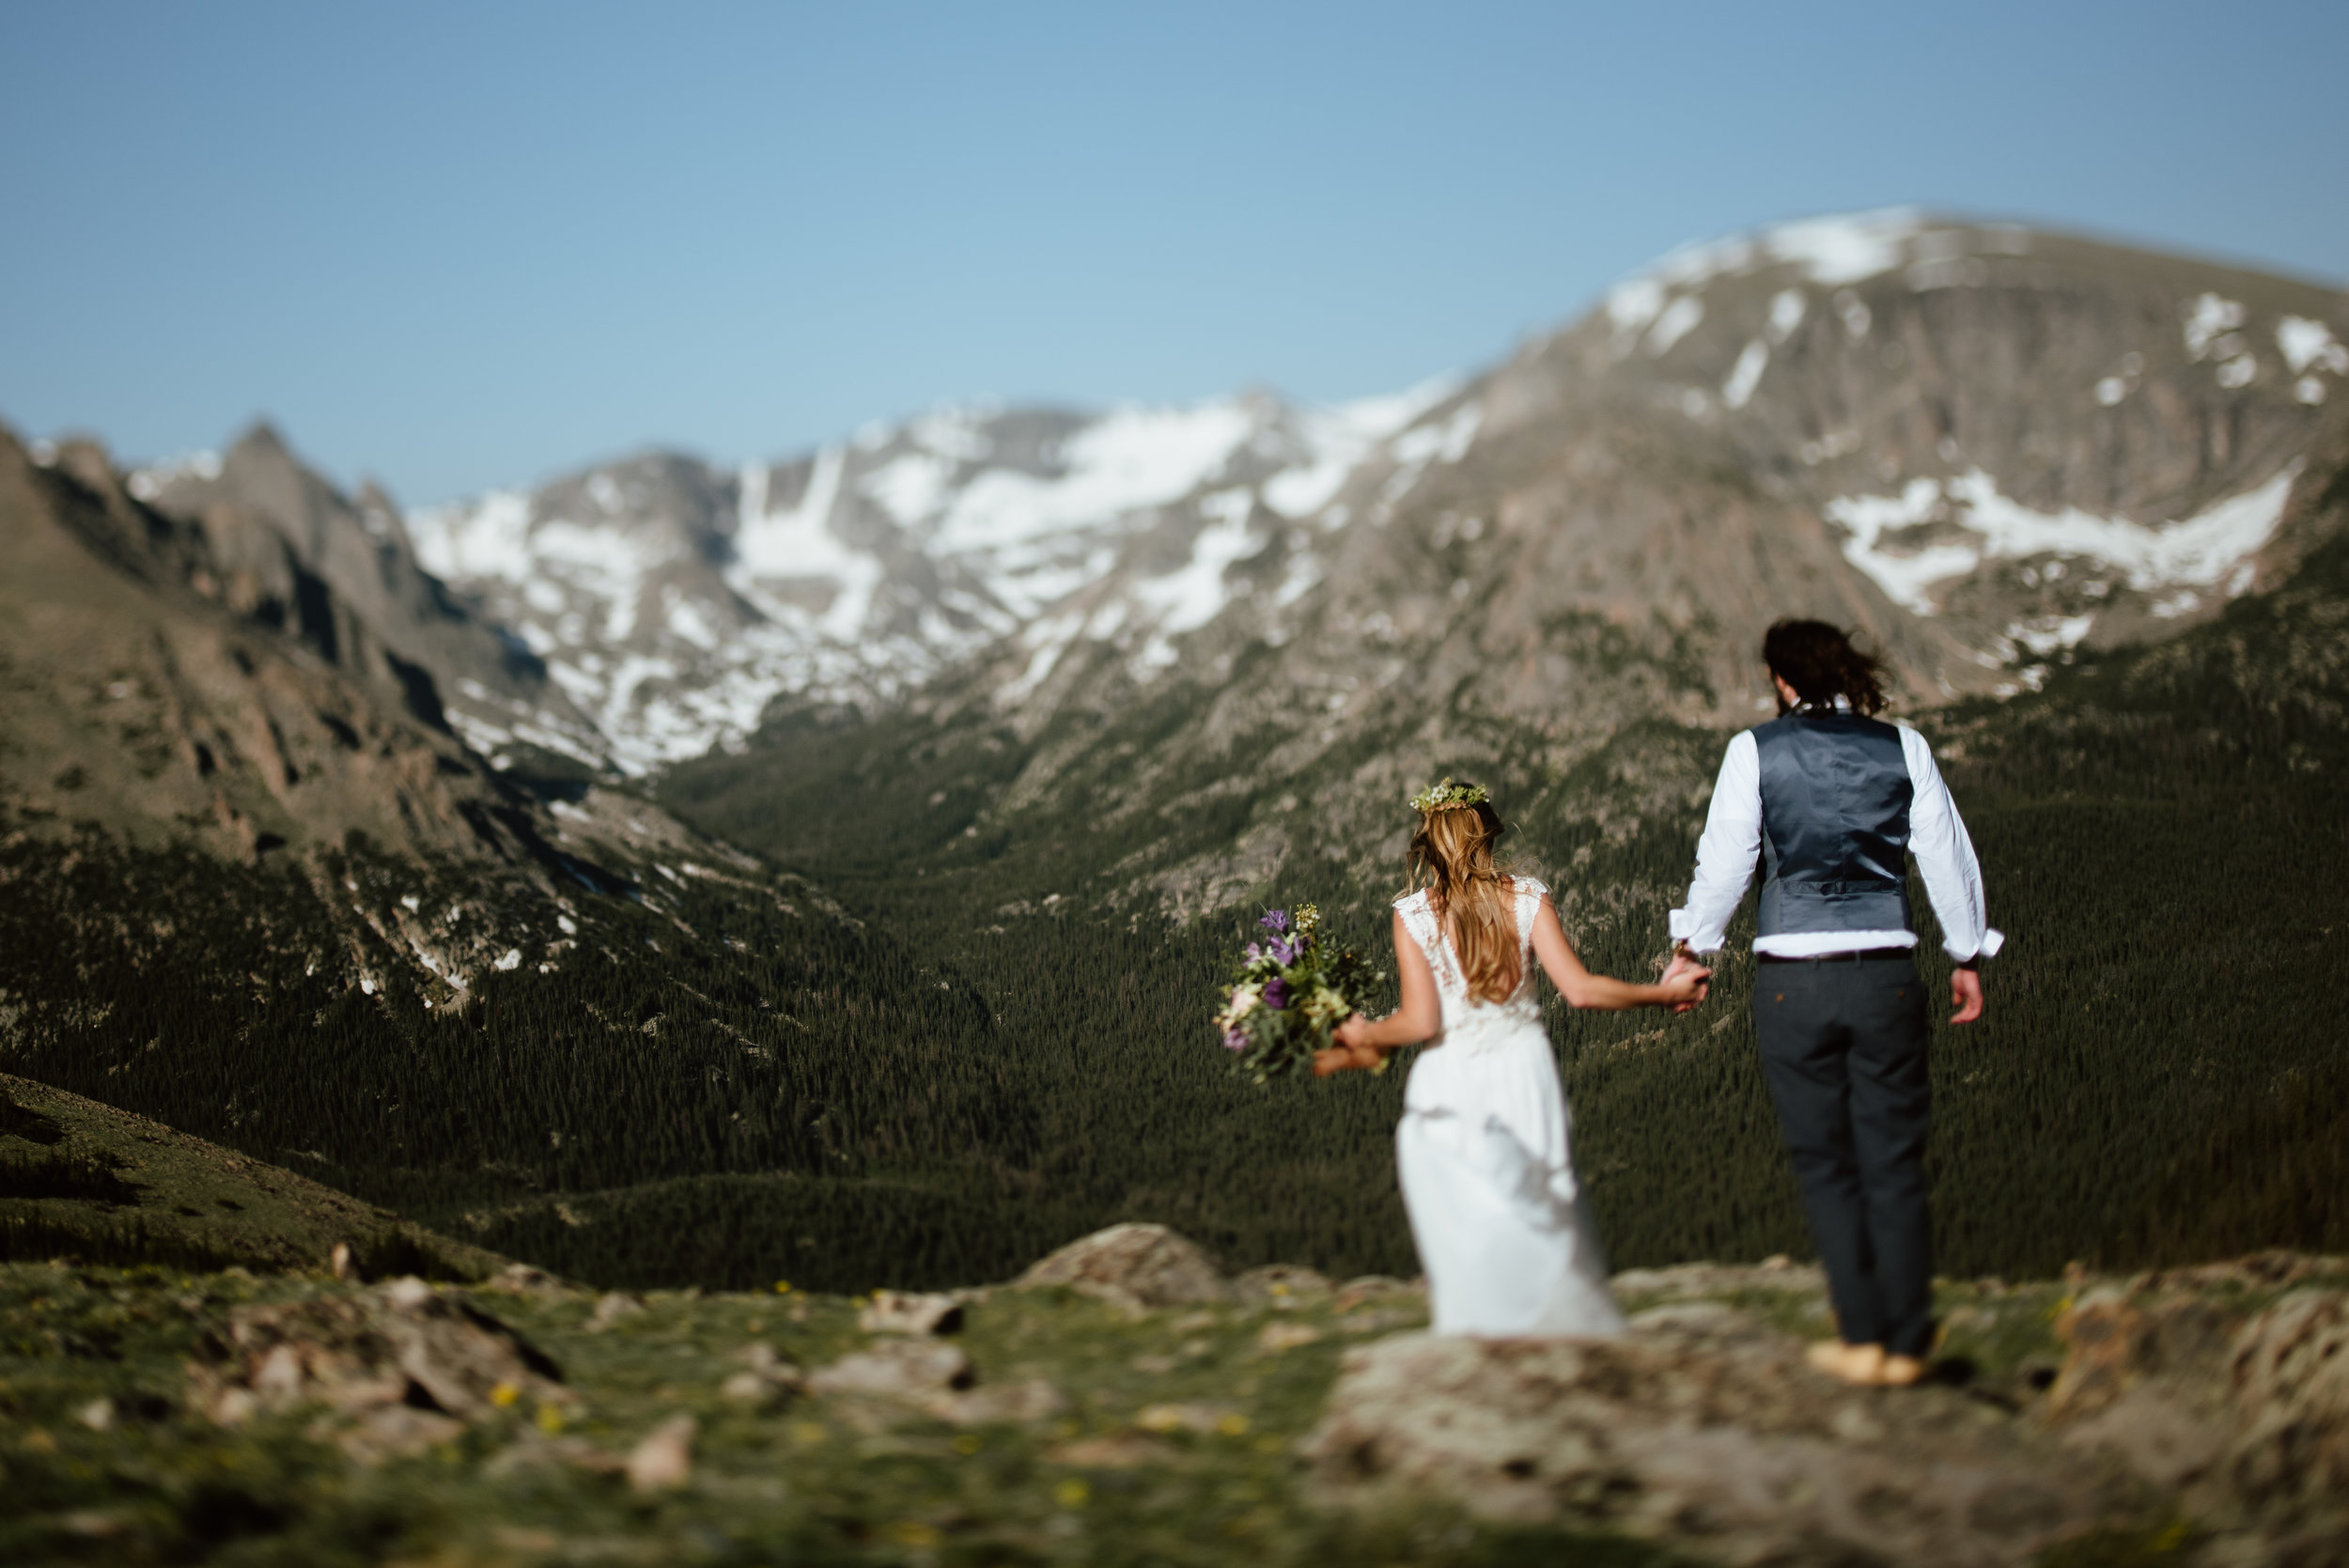 I love these wedding photos from just off of Trail Ridge road in Rocky Mountain National Park! I totally want to get married in the mountains too! | High-alpine tundra elopement photos by Colorado elopement photographer, Maddie Mae.